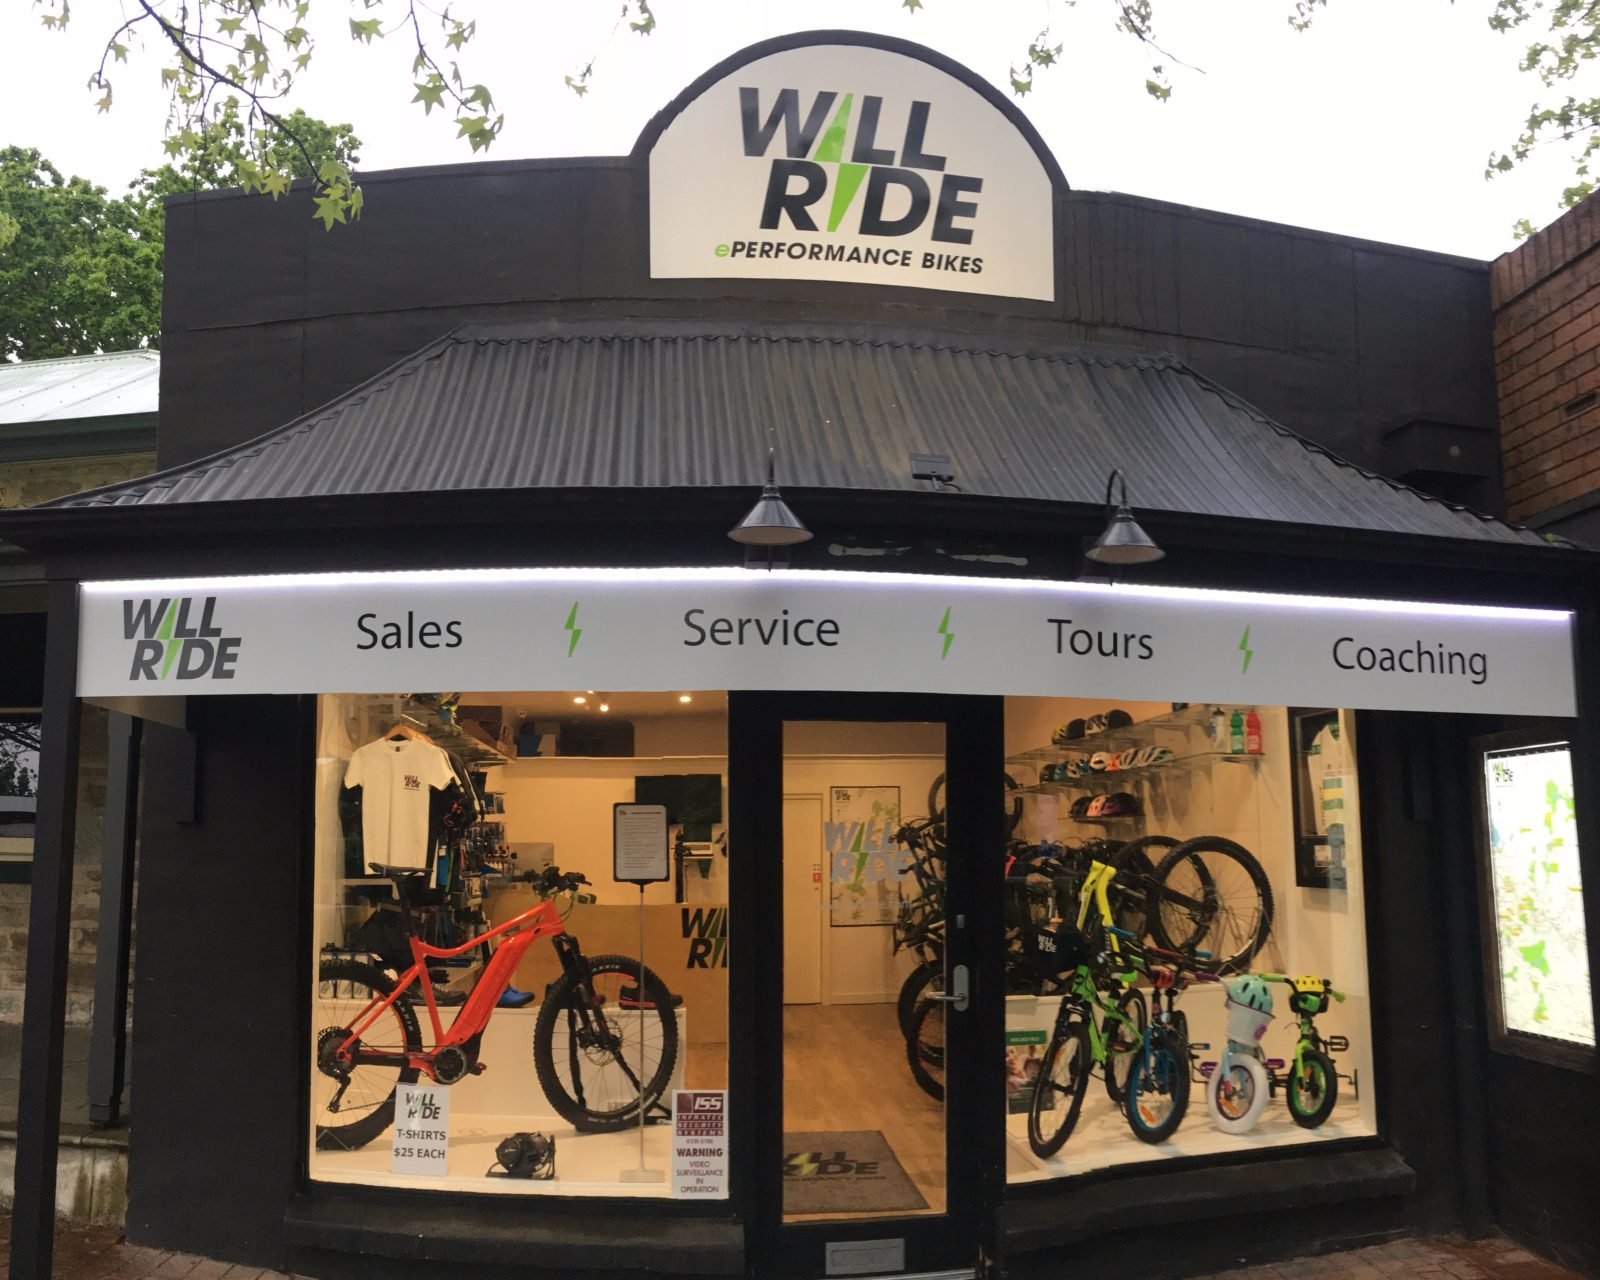 WILL RIDE SHOP FRONT